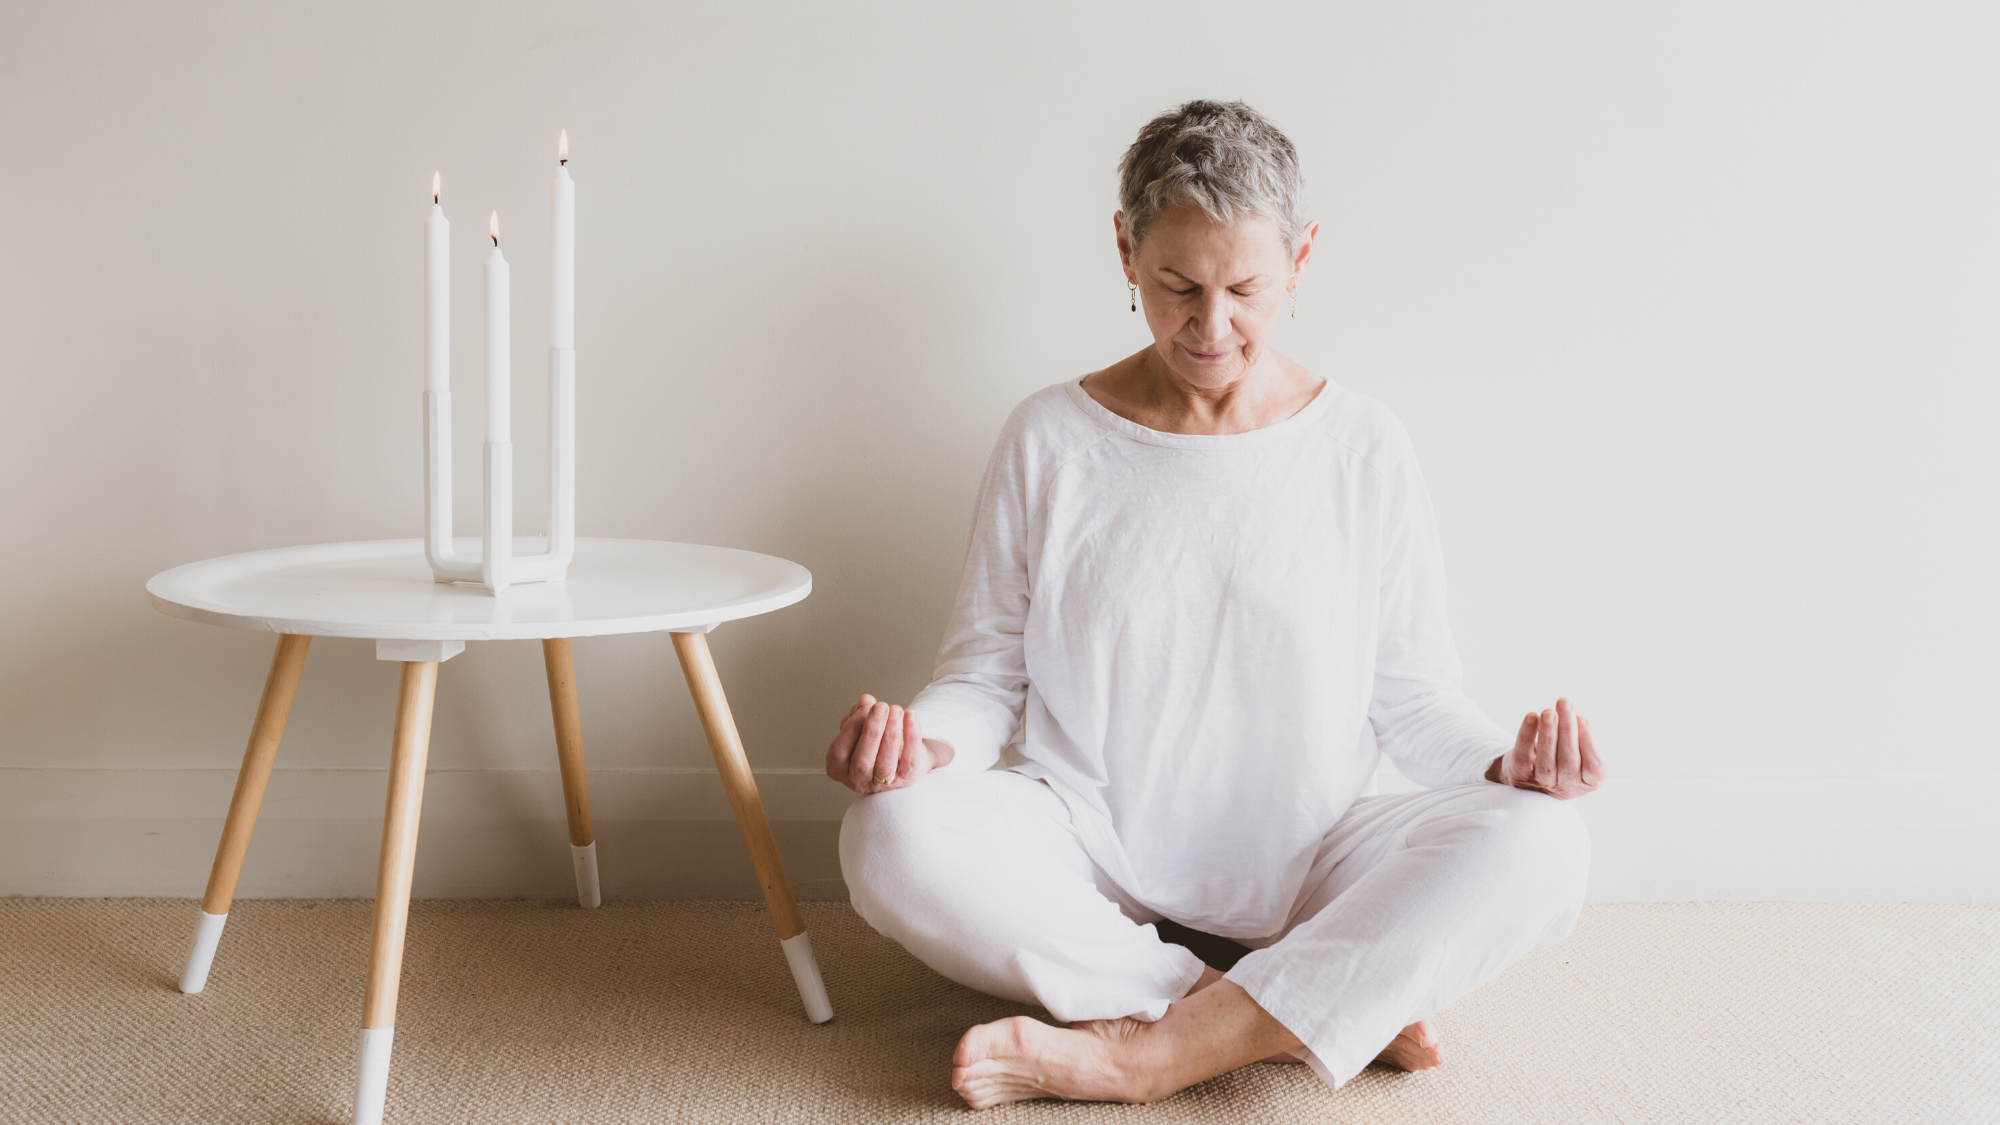 Woman practicing meditation with candles.